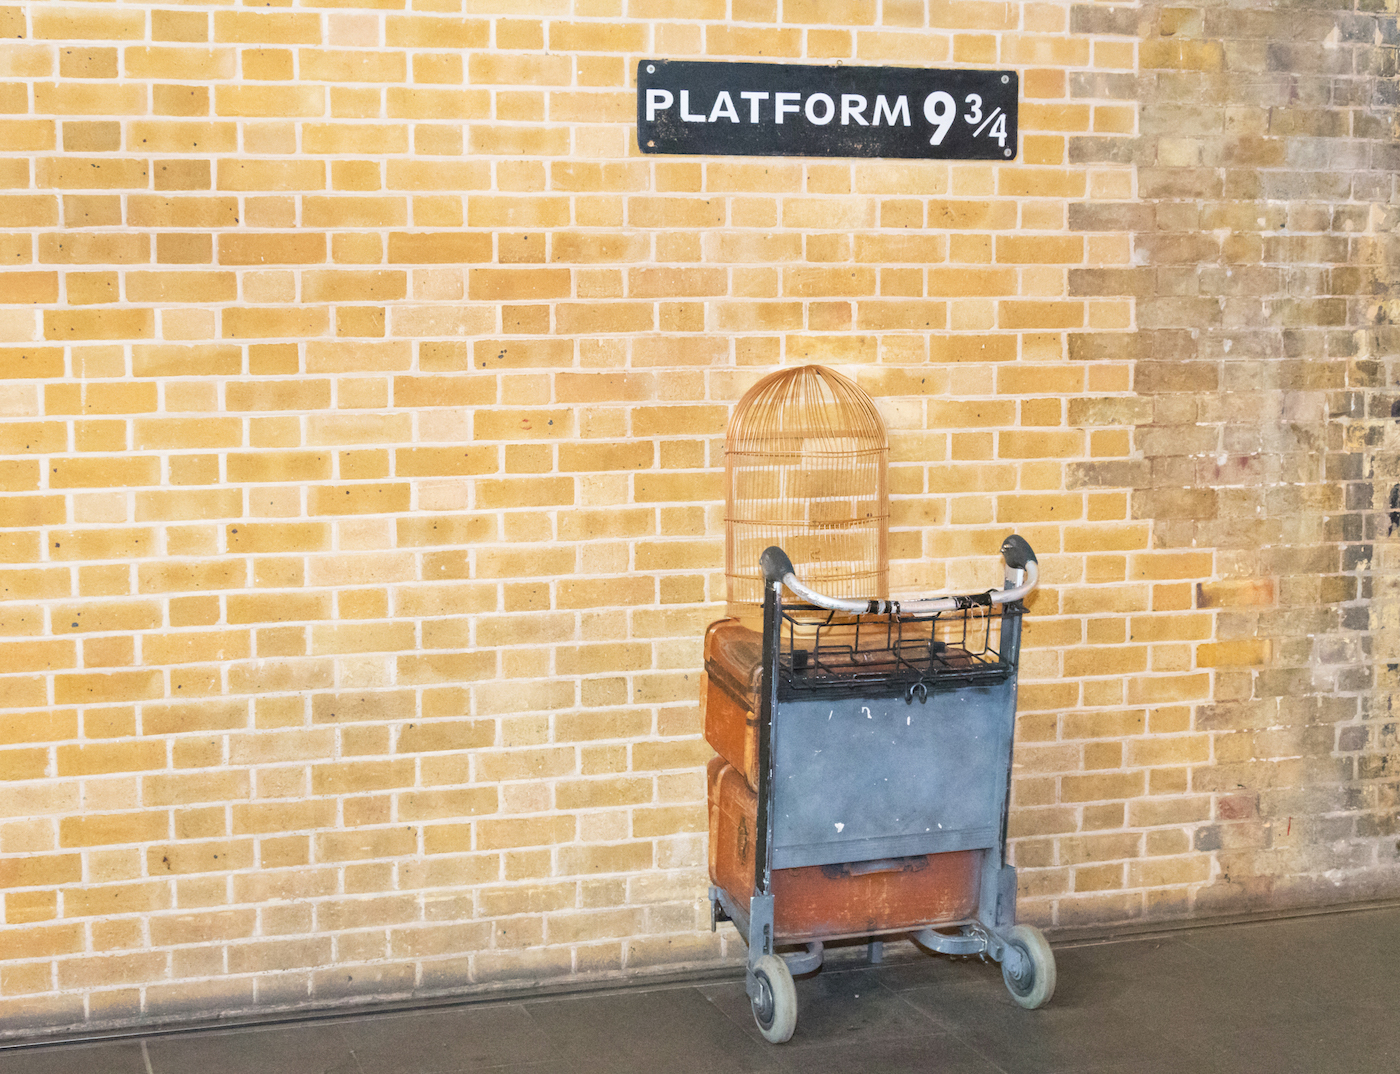 Kings Cross Platform 934